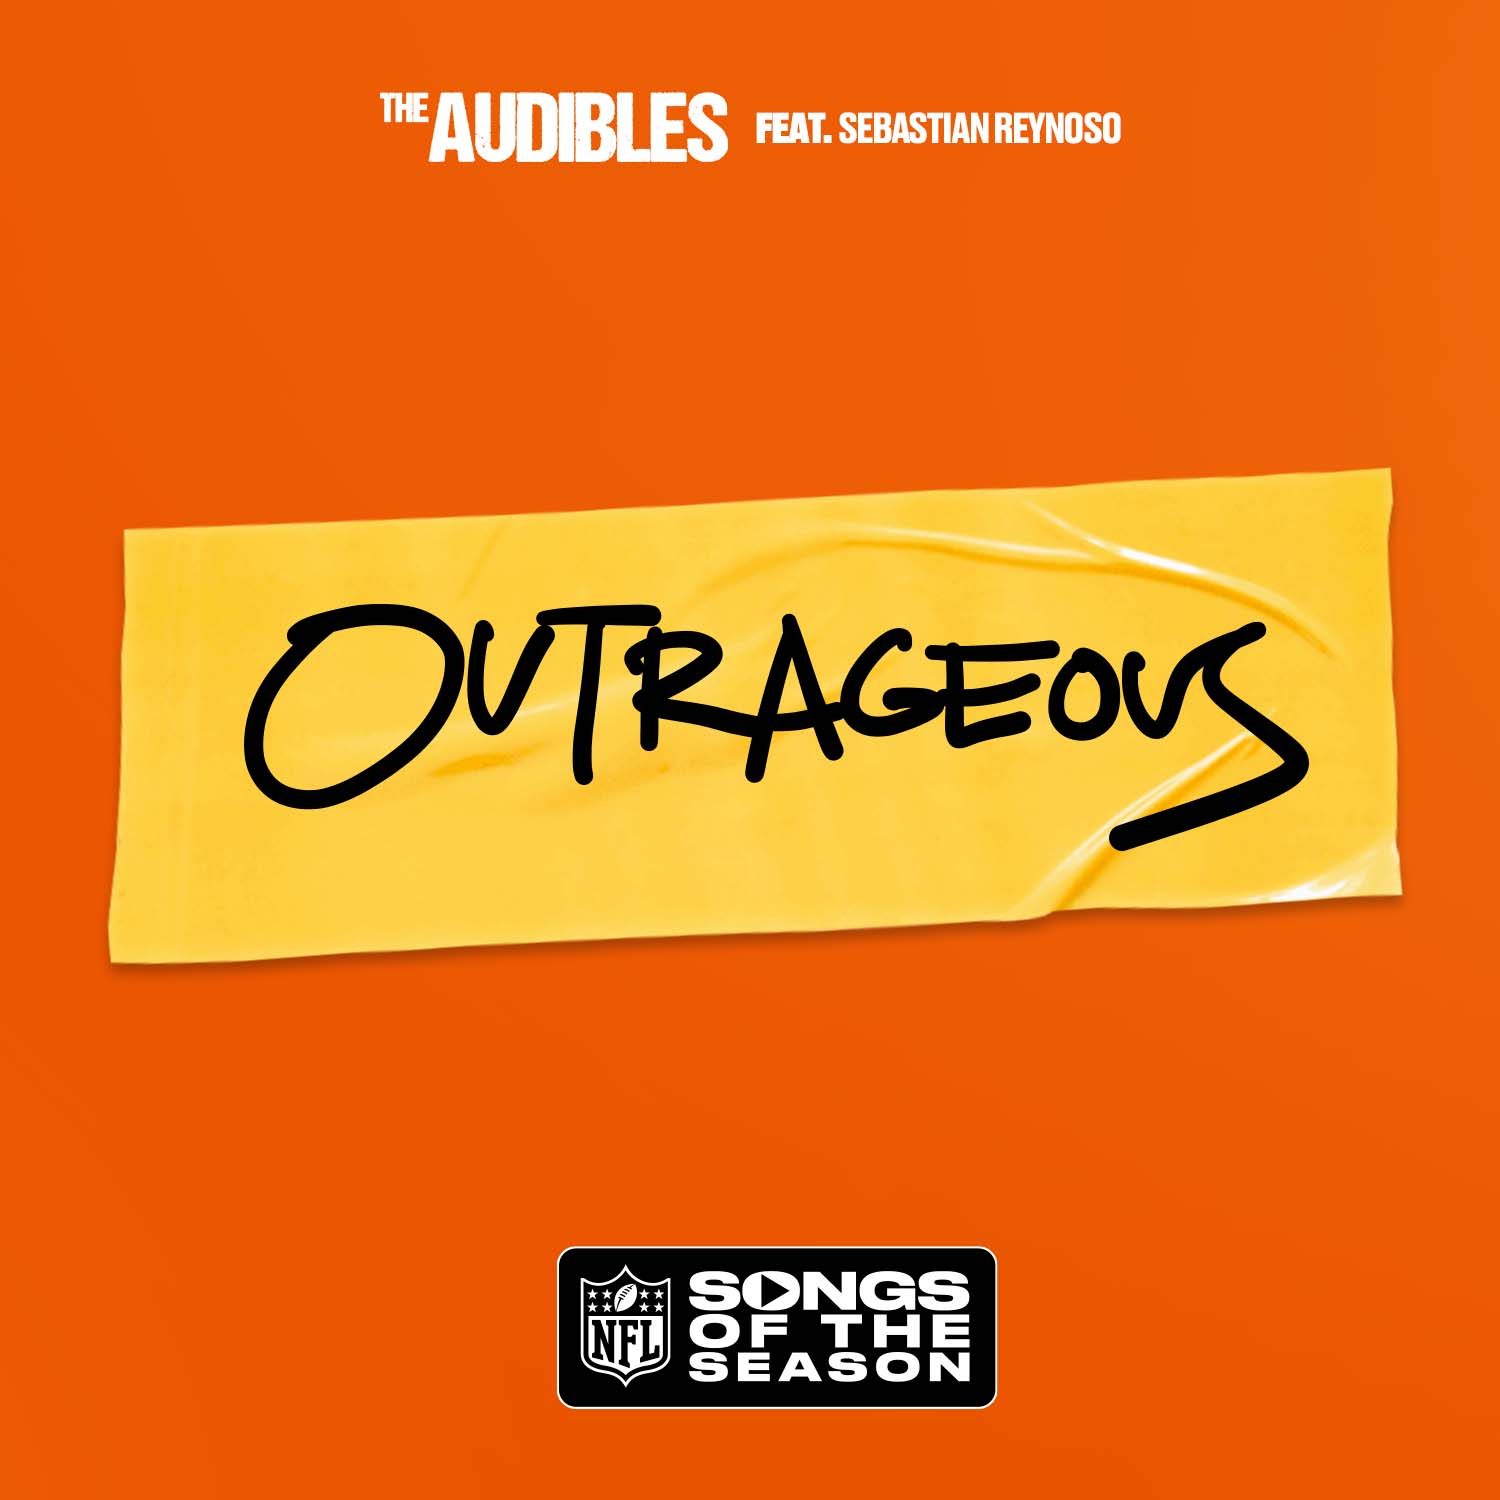 Outrageous Cover via Berk Communications for use by 360 Magazine